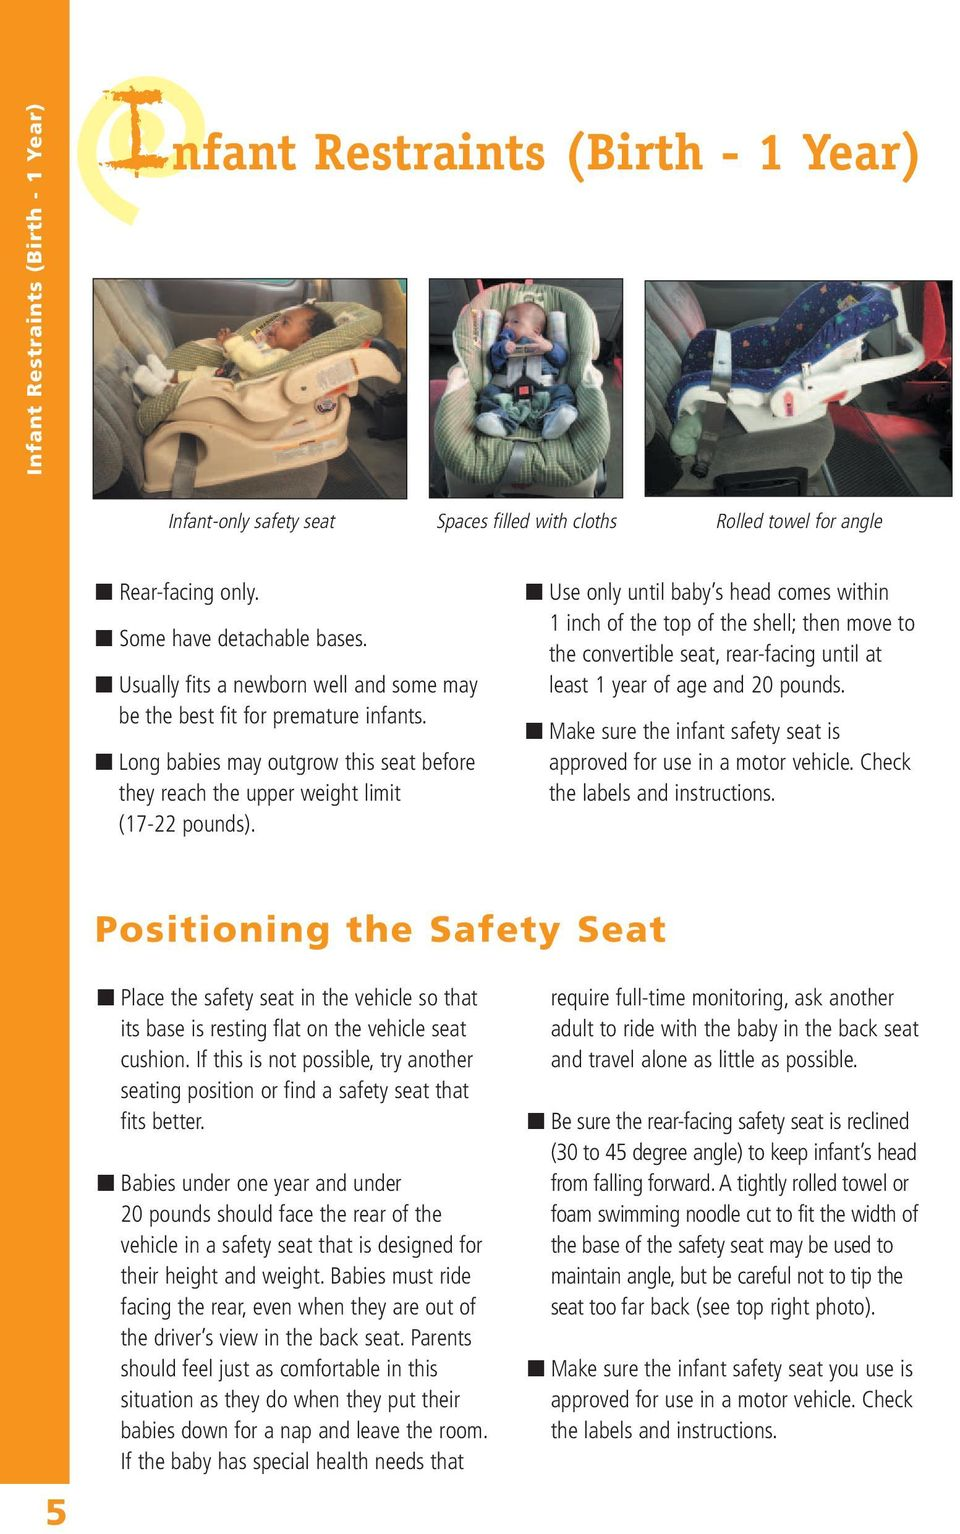 Use only until baby s head comes within 1 inch of the top of the shell; then move to the convertible seat, rear-facing until at least 1 year of age and 20 pounds.